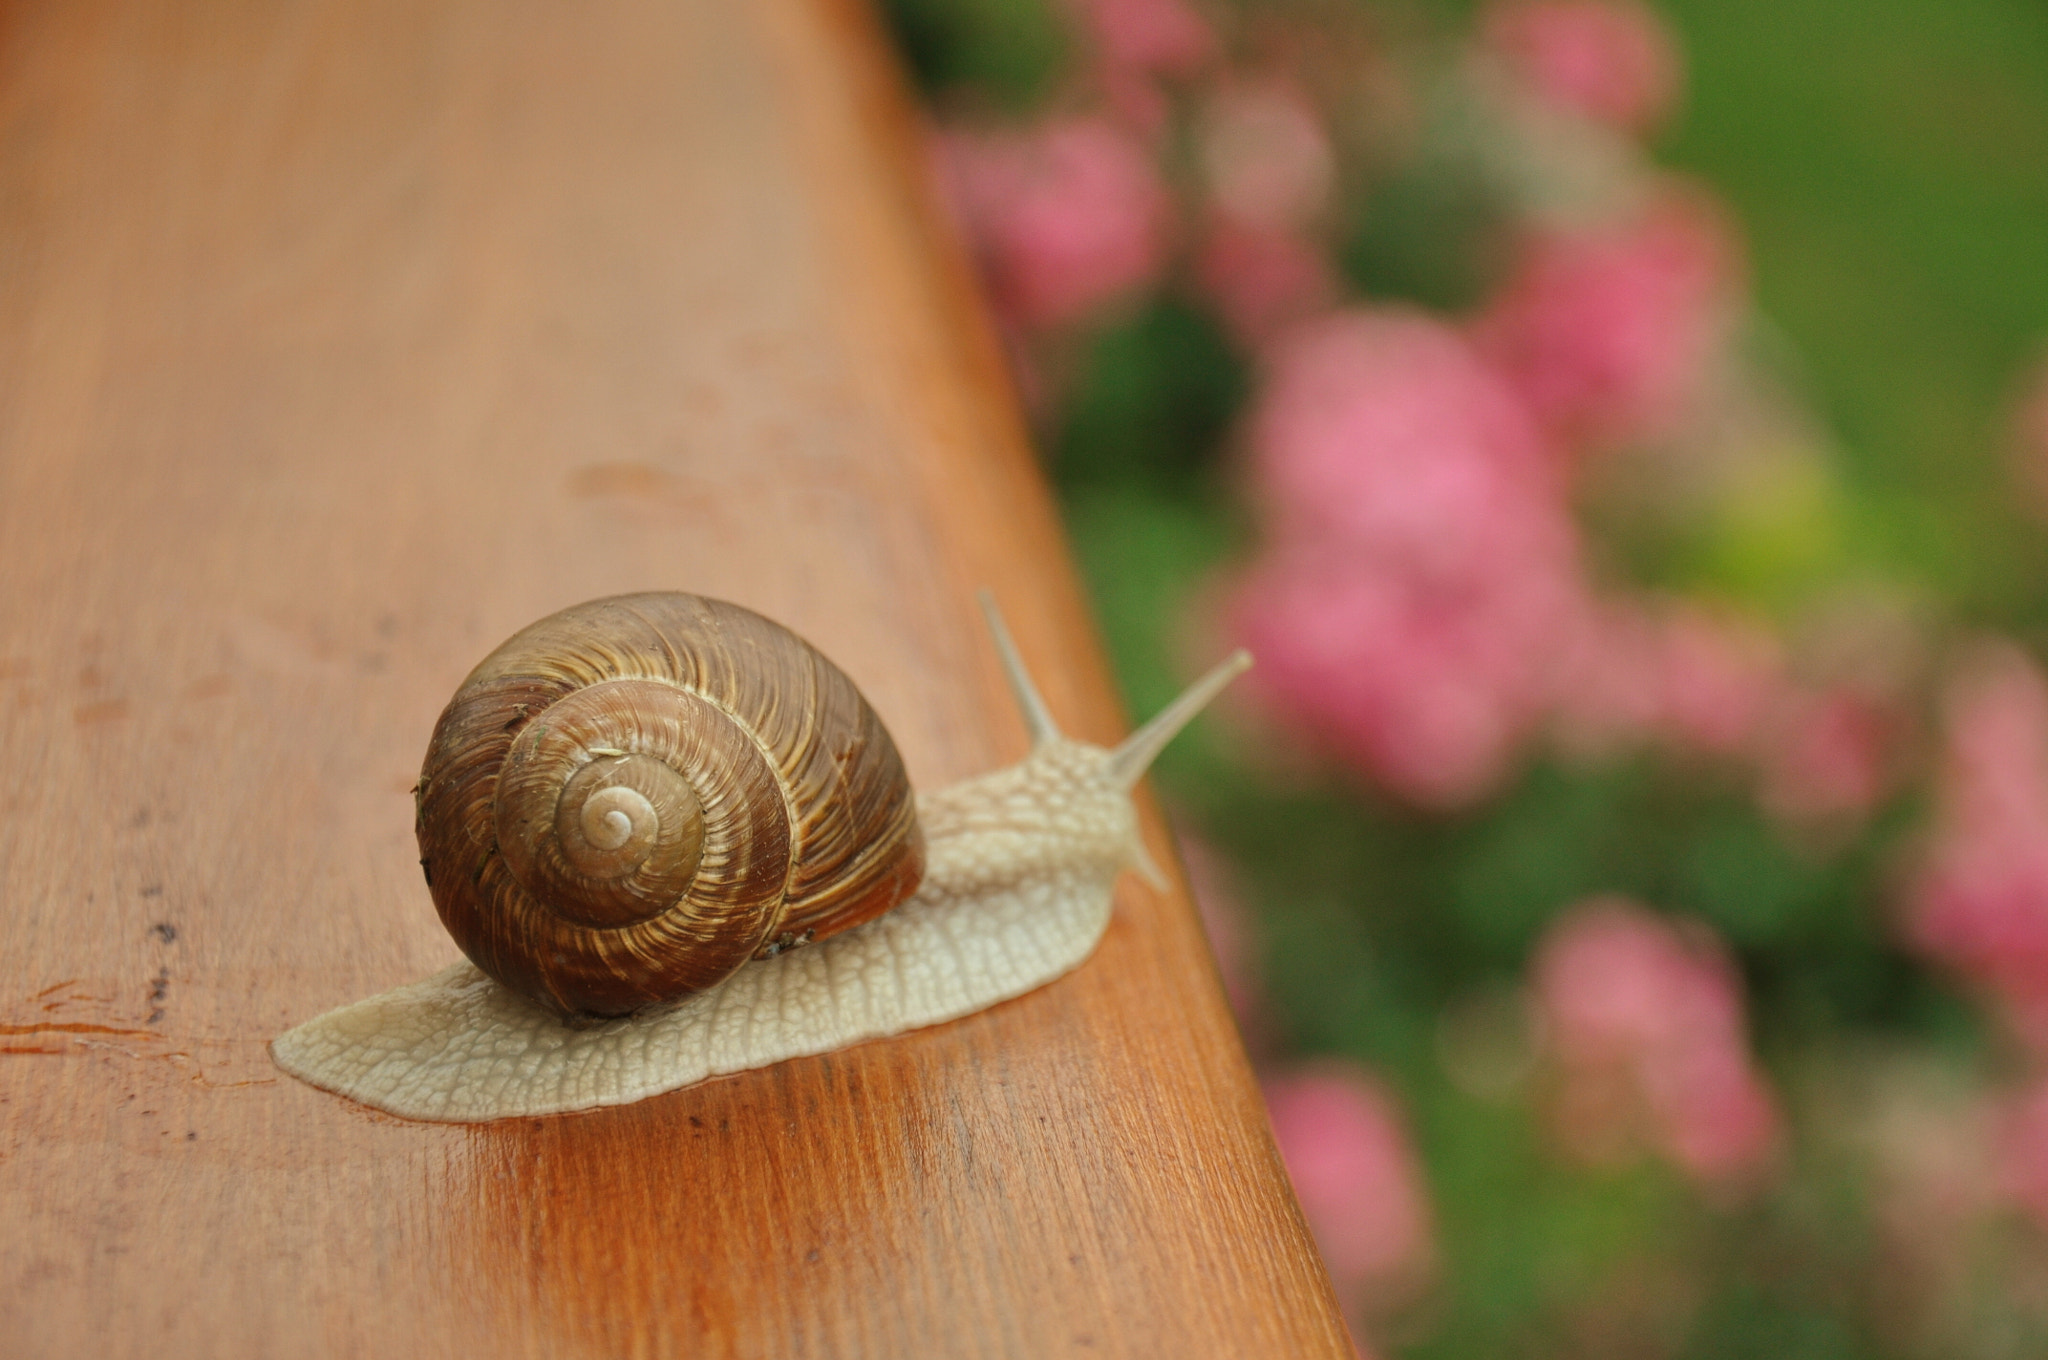 Photograph Big snail on our balcony by Celine Hlms on 500px